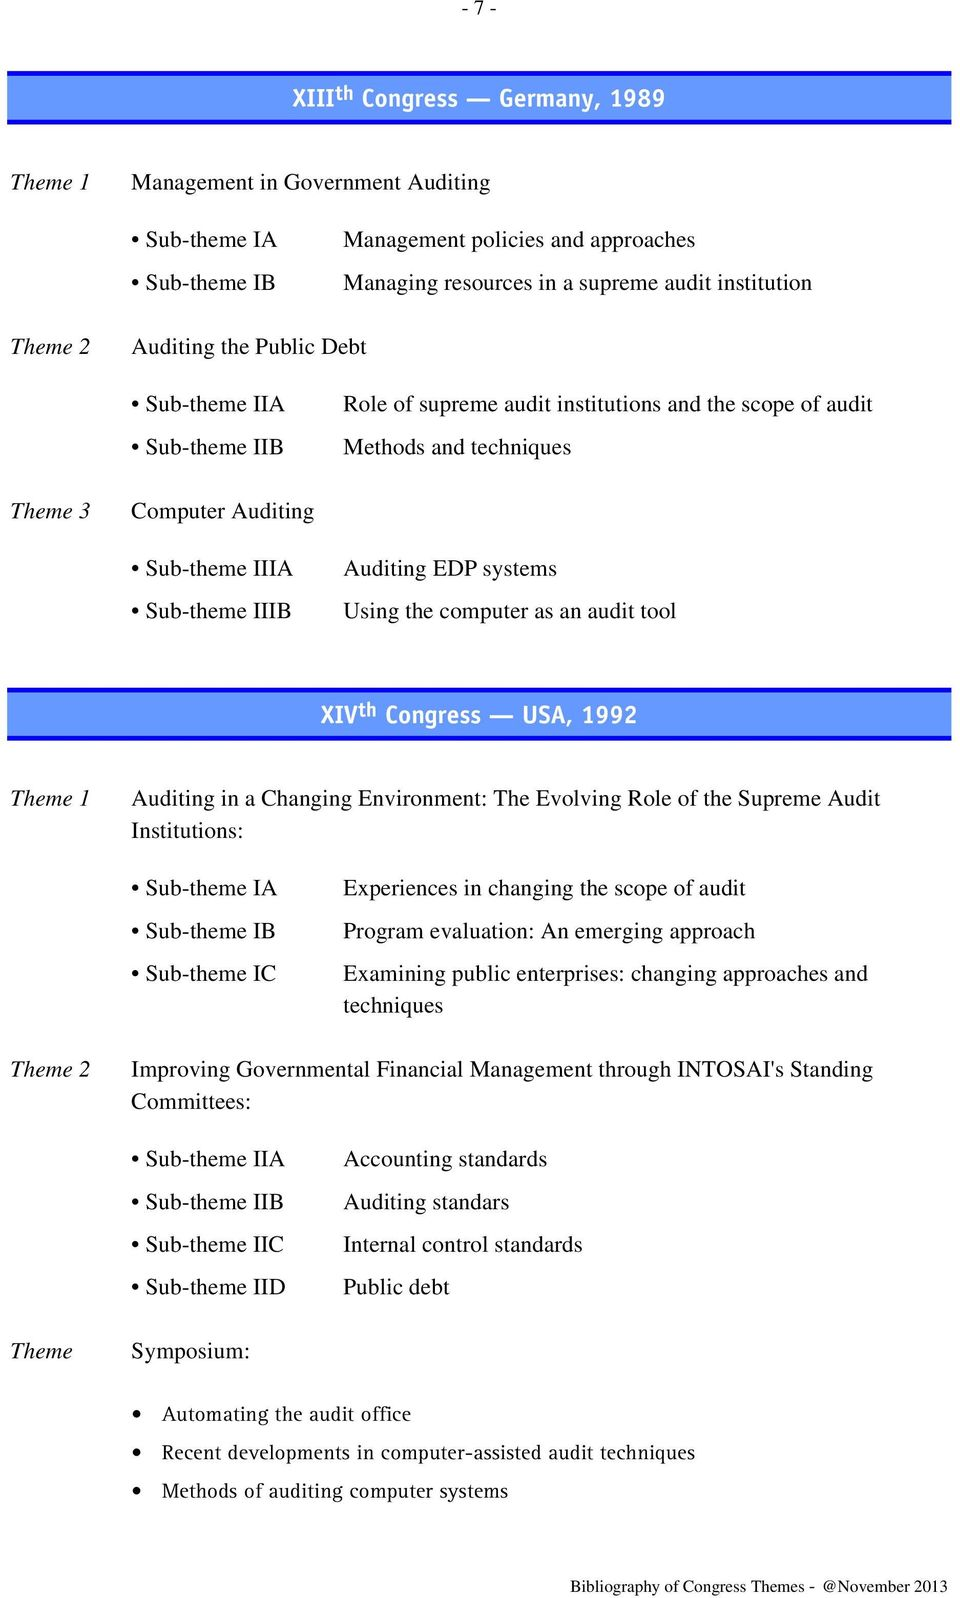 computer as an audit tool XIV th Congress USA, 1992 Auditing in a Changing Environment: The Evolving Role of the Supreme Audit Institutions: Sub-theme IA Sub-theme IB Sub-theme IC Experiences in